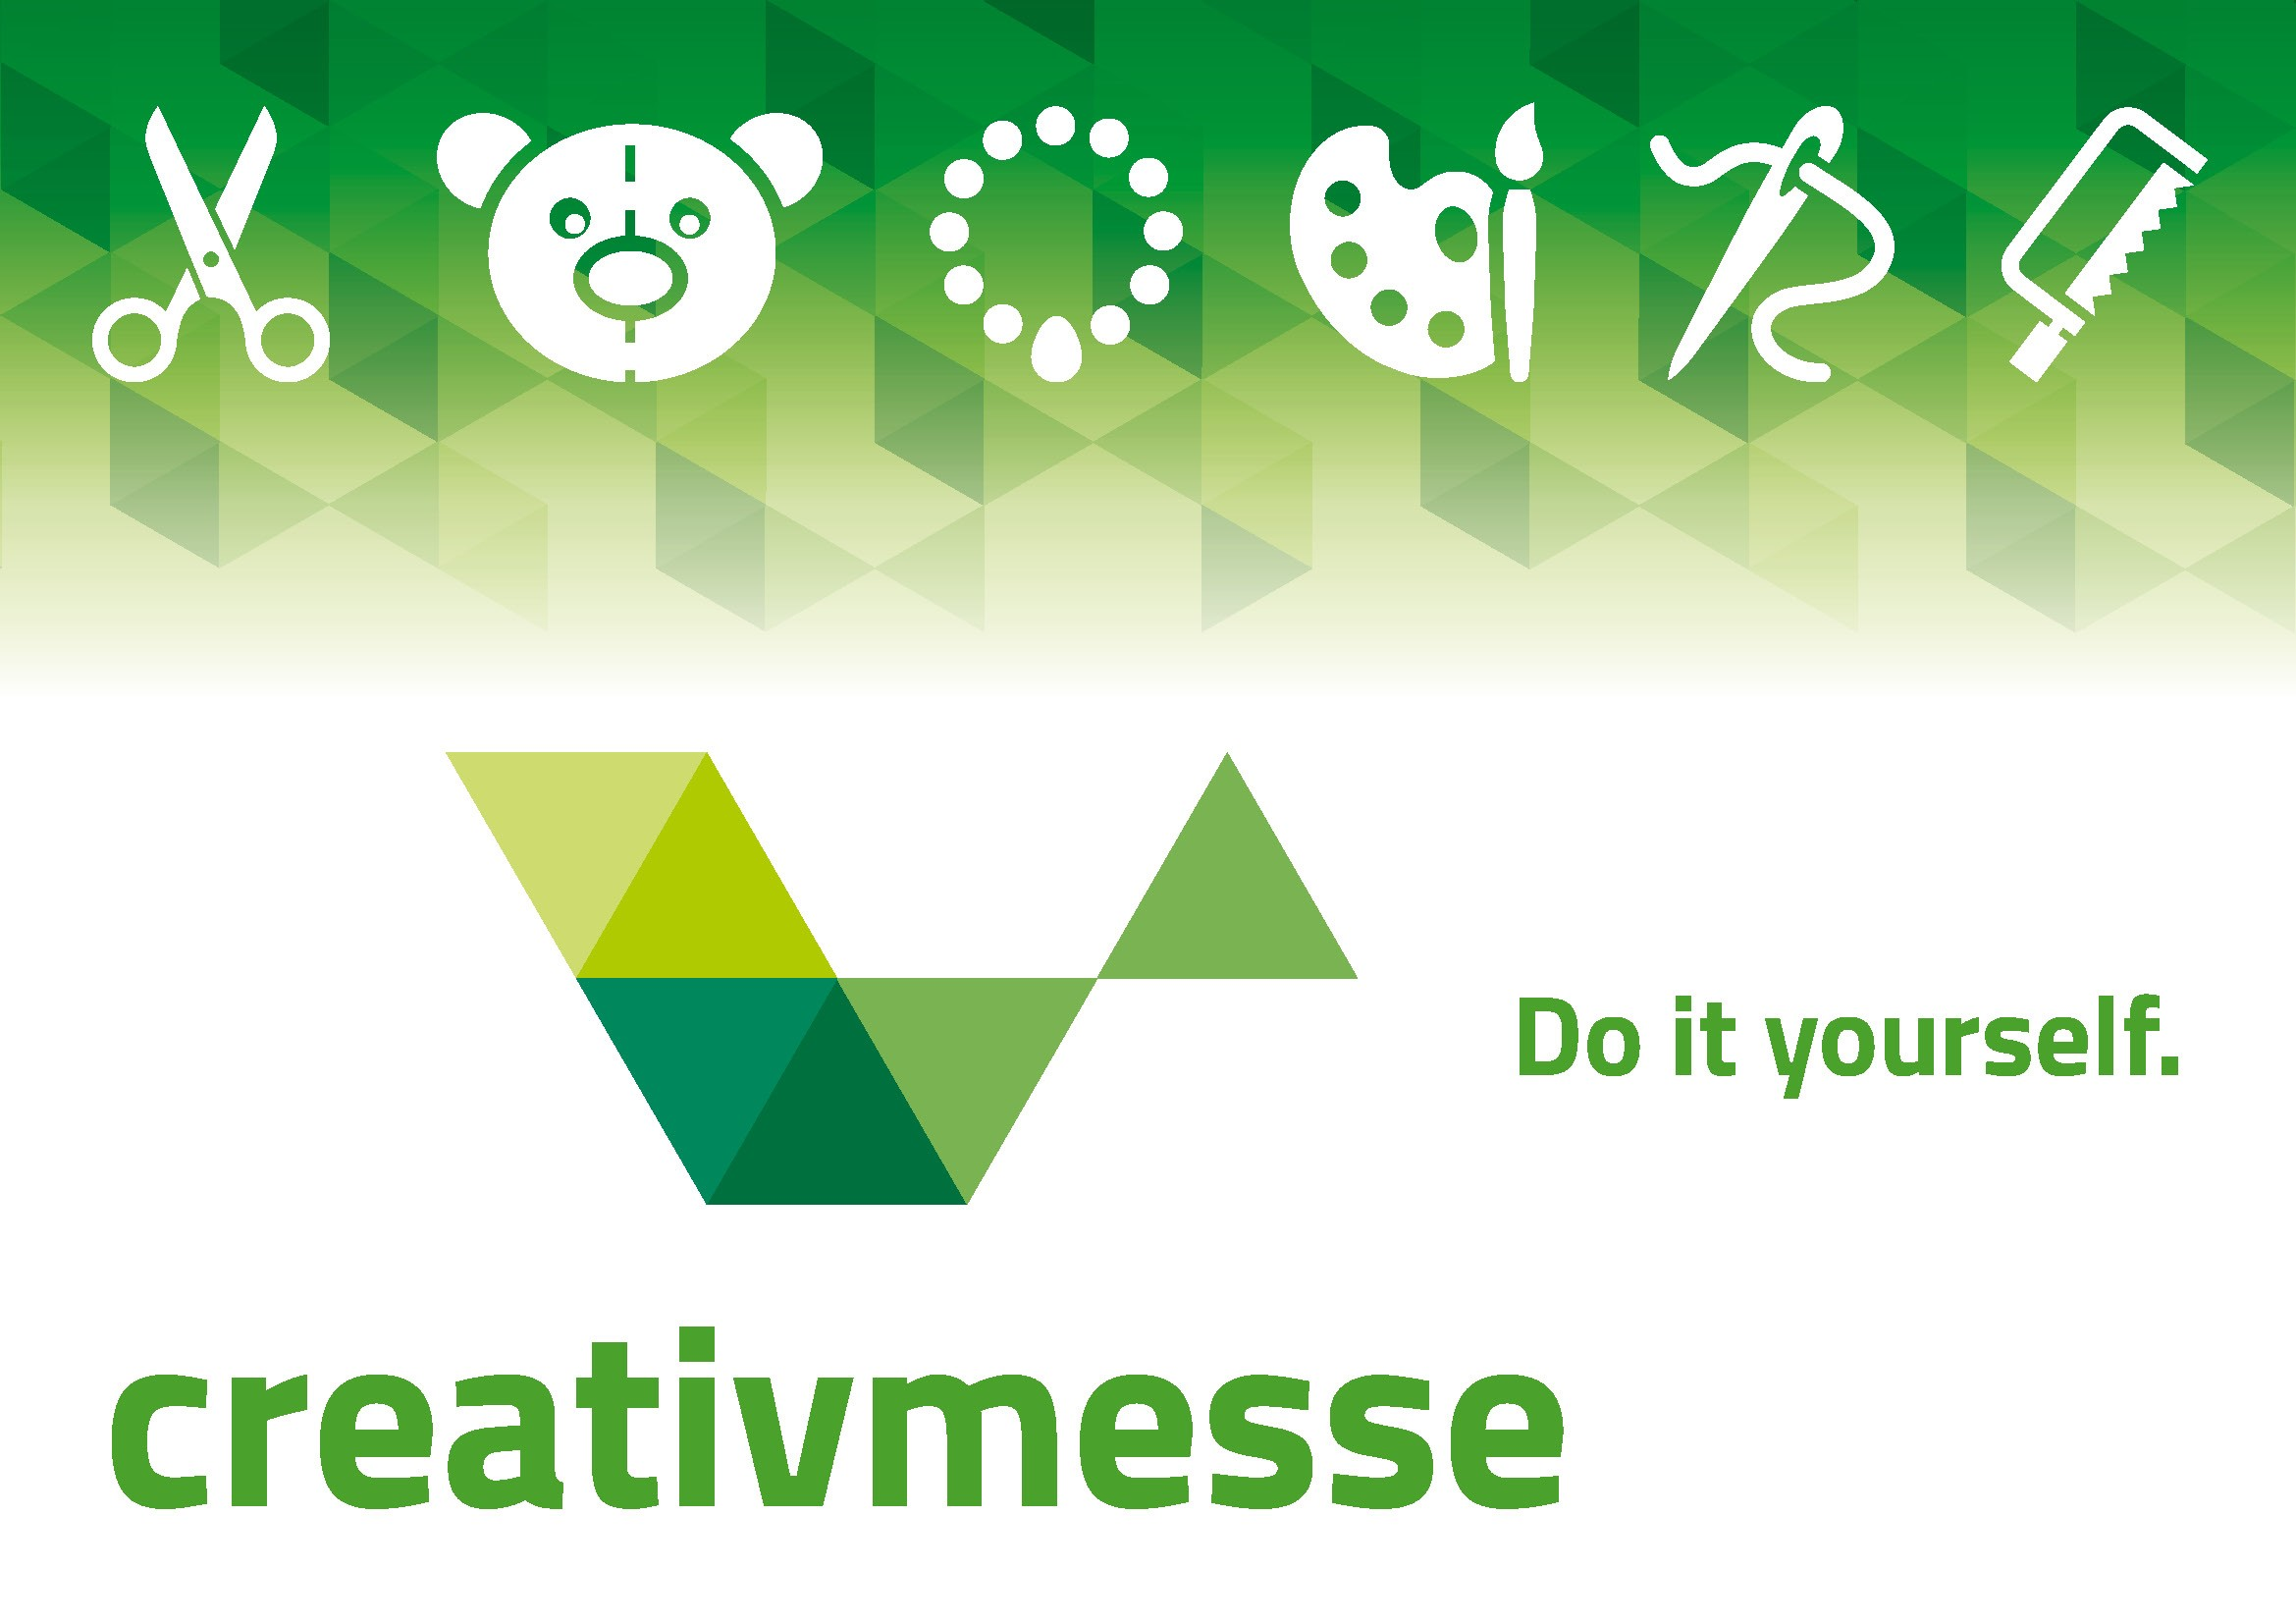 http://www.creativmesse.de/sites/default/files/cm_logoundclaim.jpg